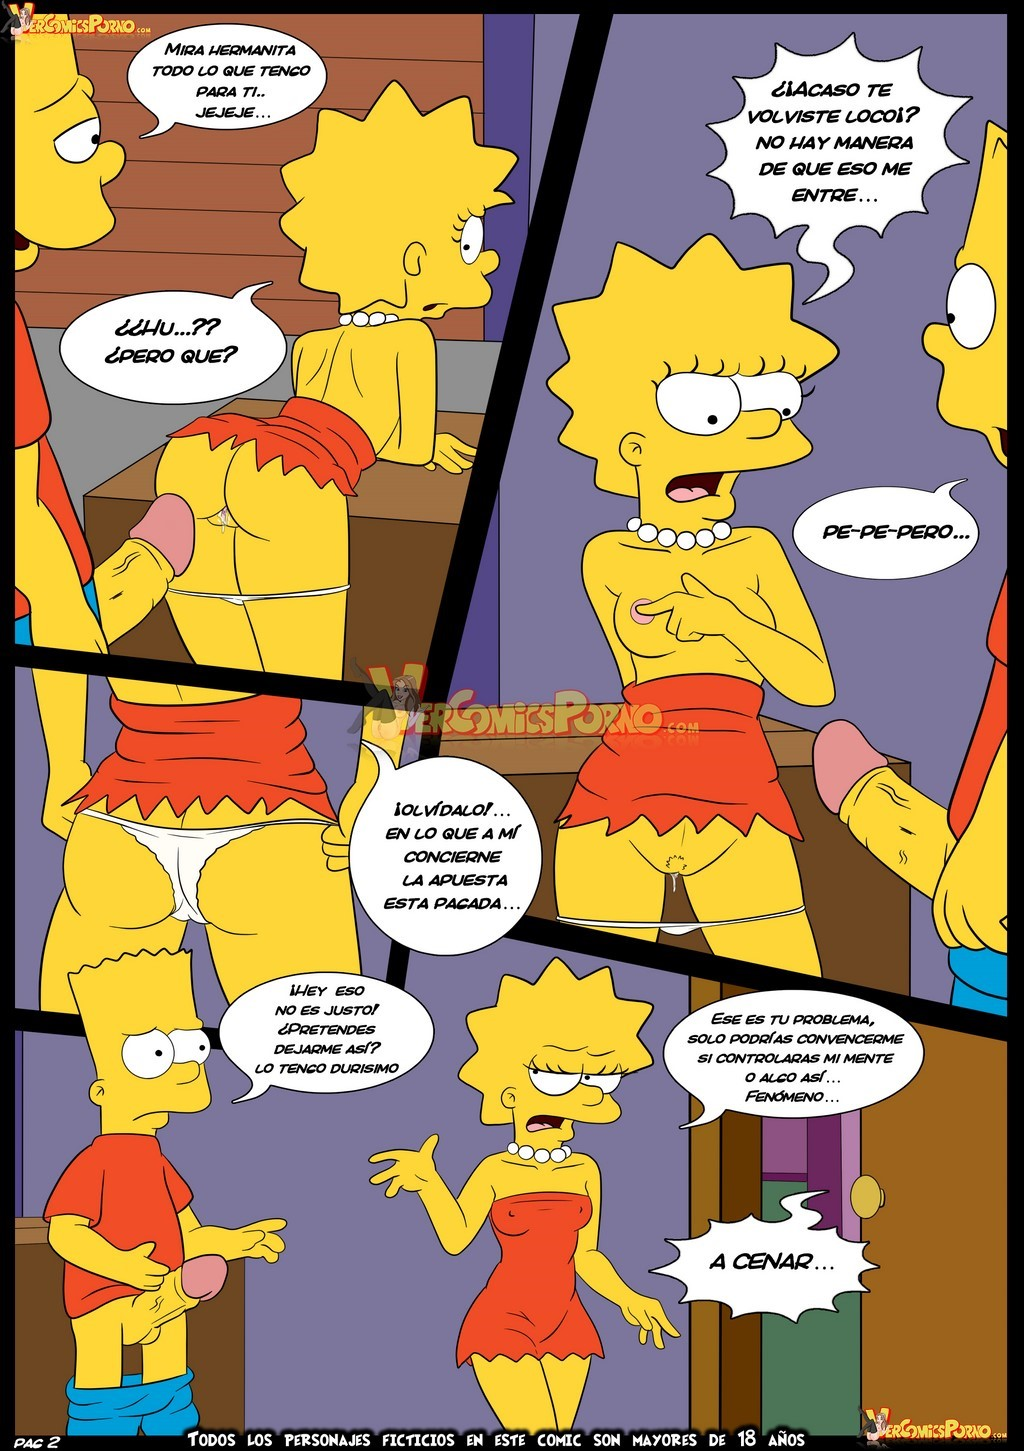 simpsons porno Croc,Simpsons- Love to braggart (English) ⋆ Porn Comix Online.